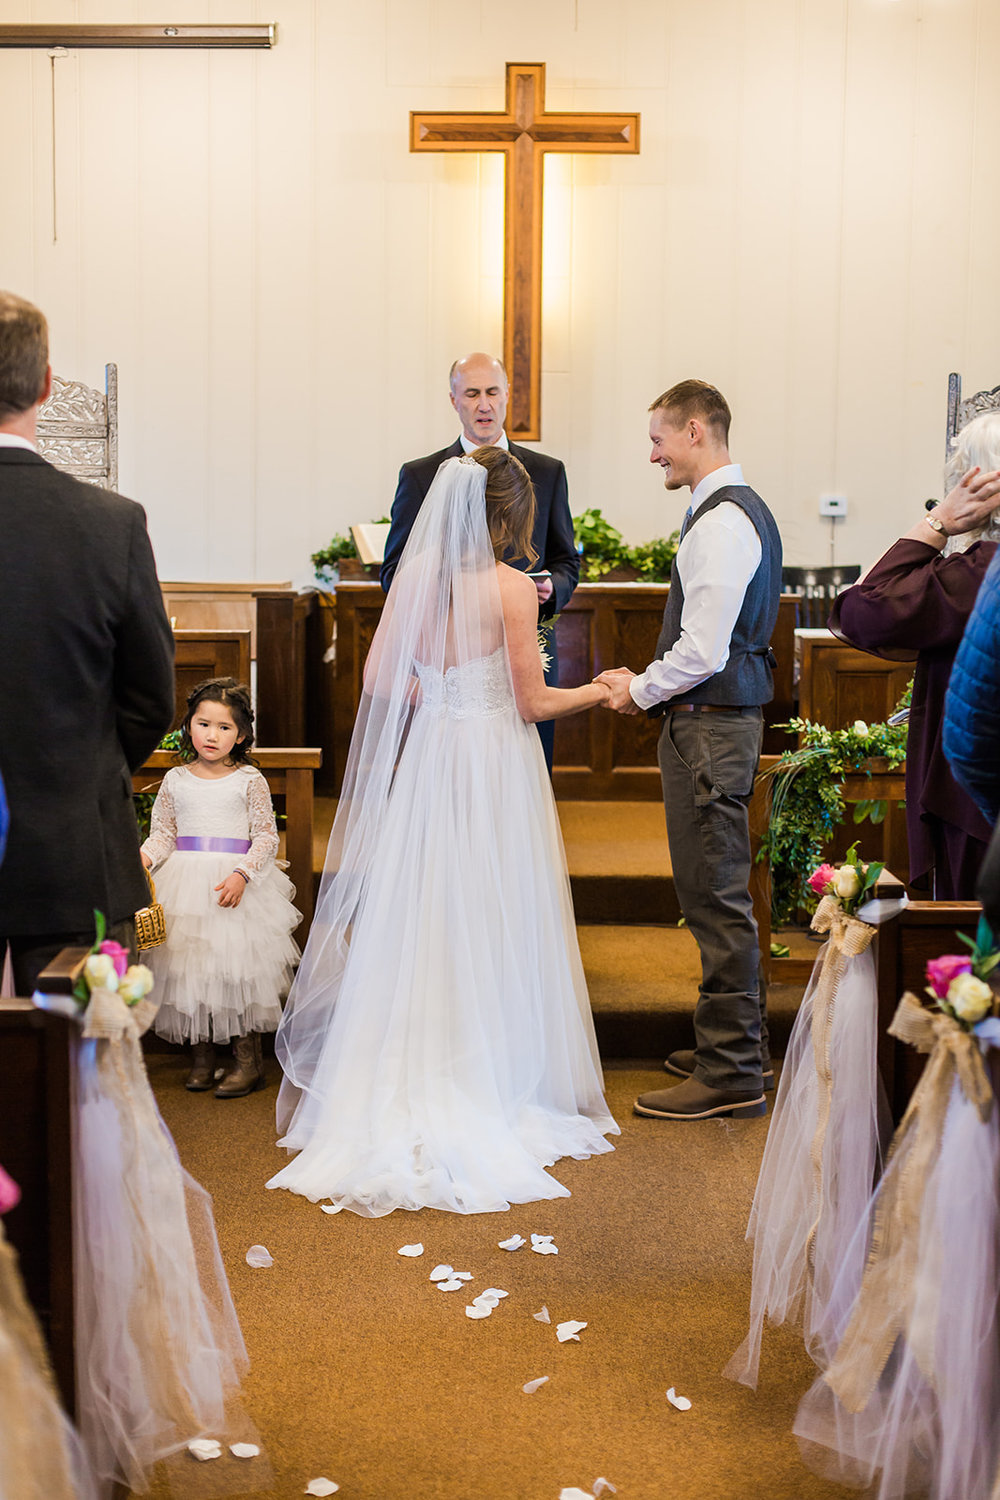 at the alter bride and groom spokane wedding dress